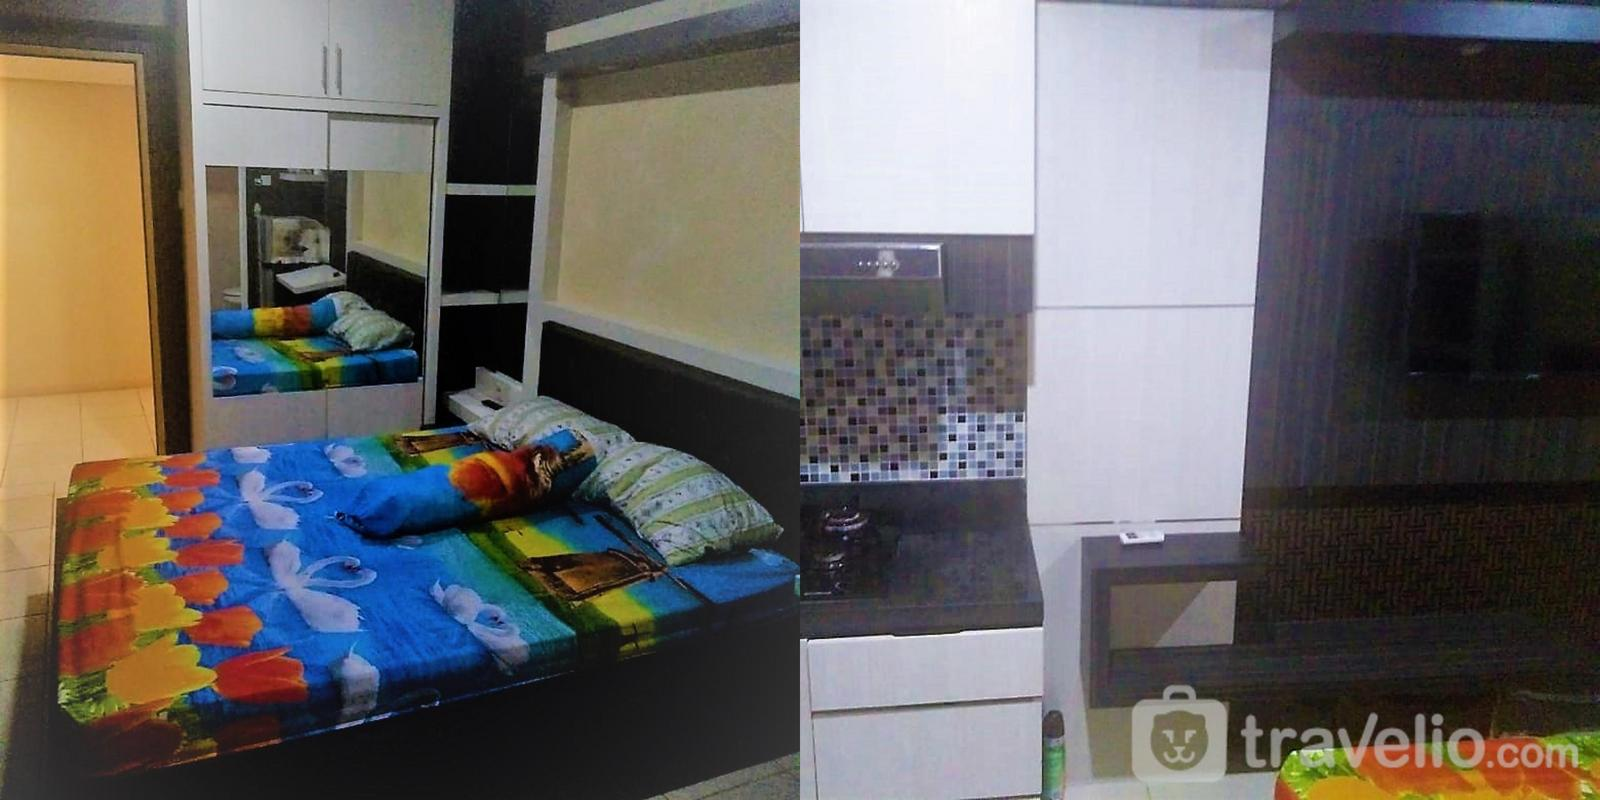 Educity Apartment Surabaya - Full Furnished Studio Room 25th Floor At Educity Apartment